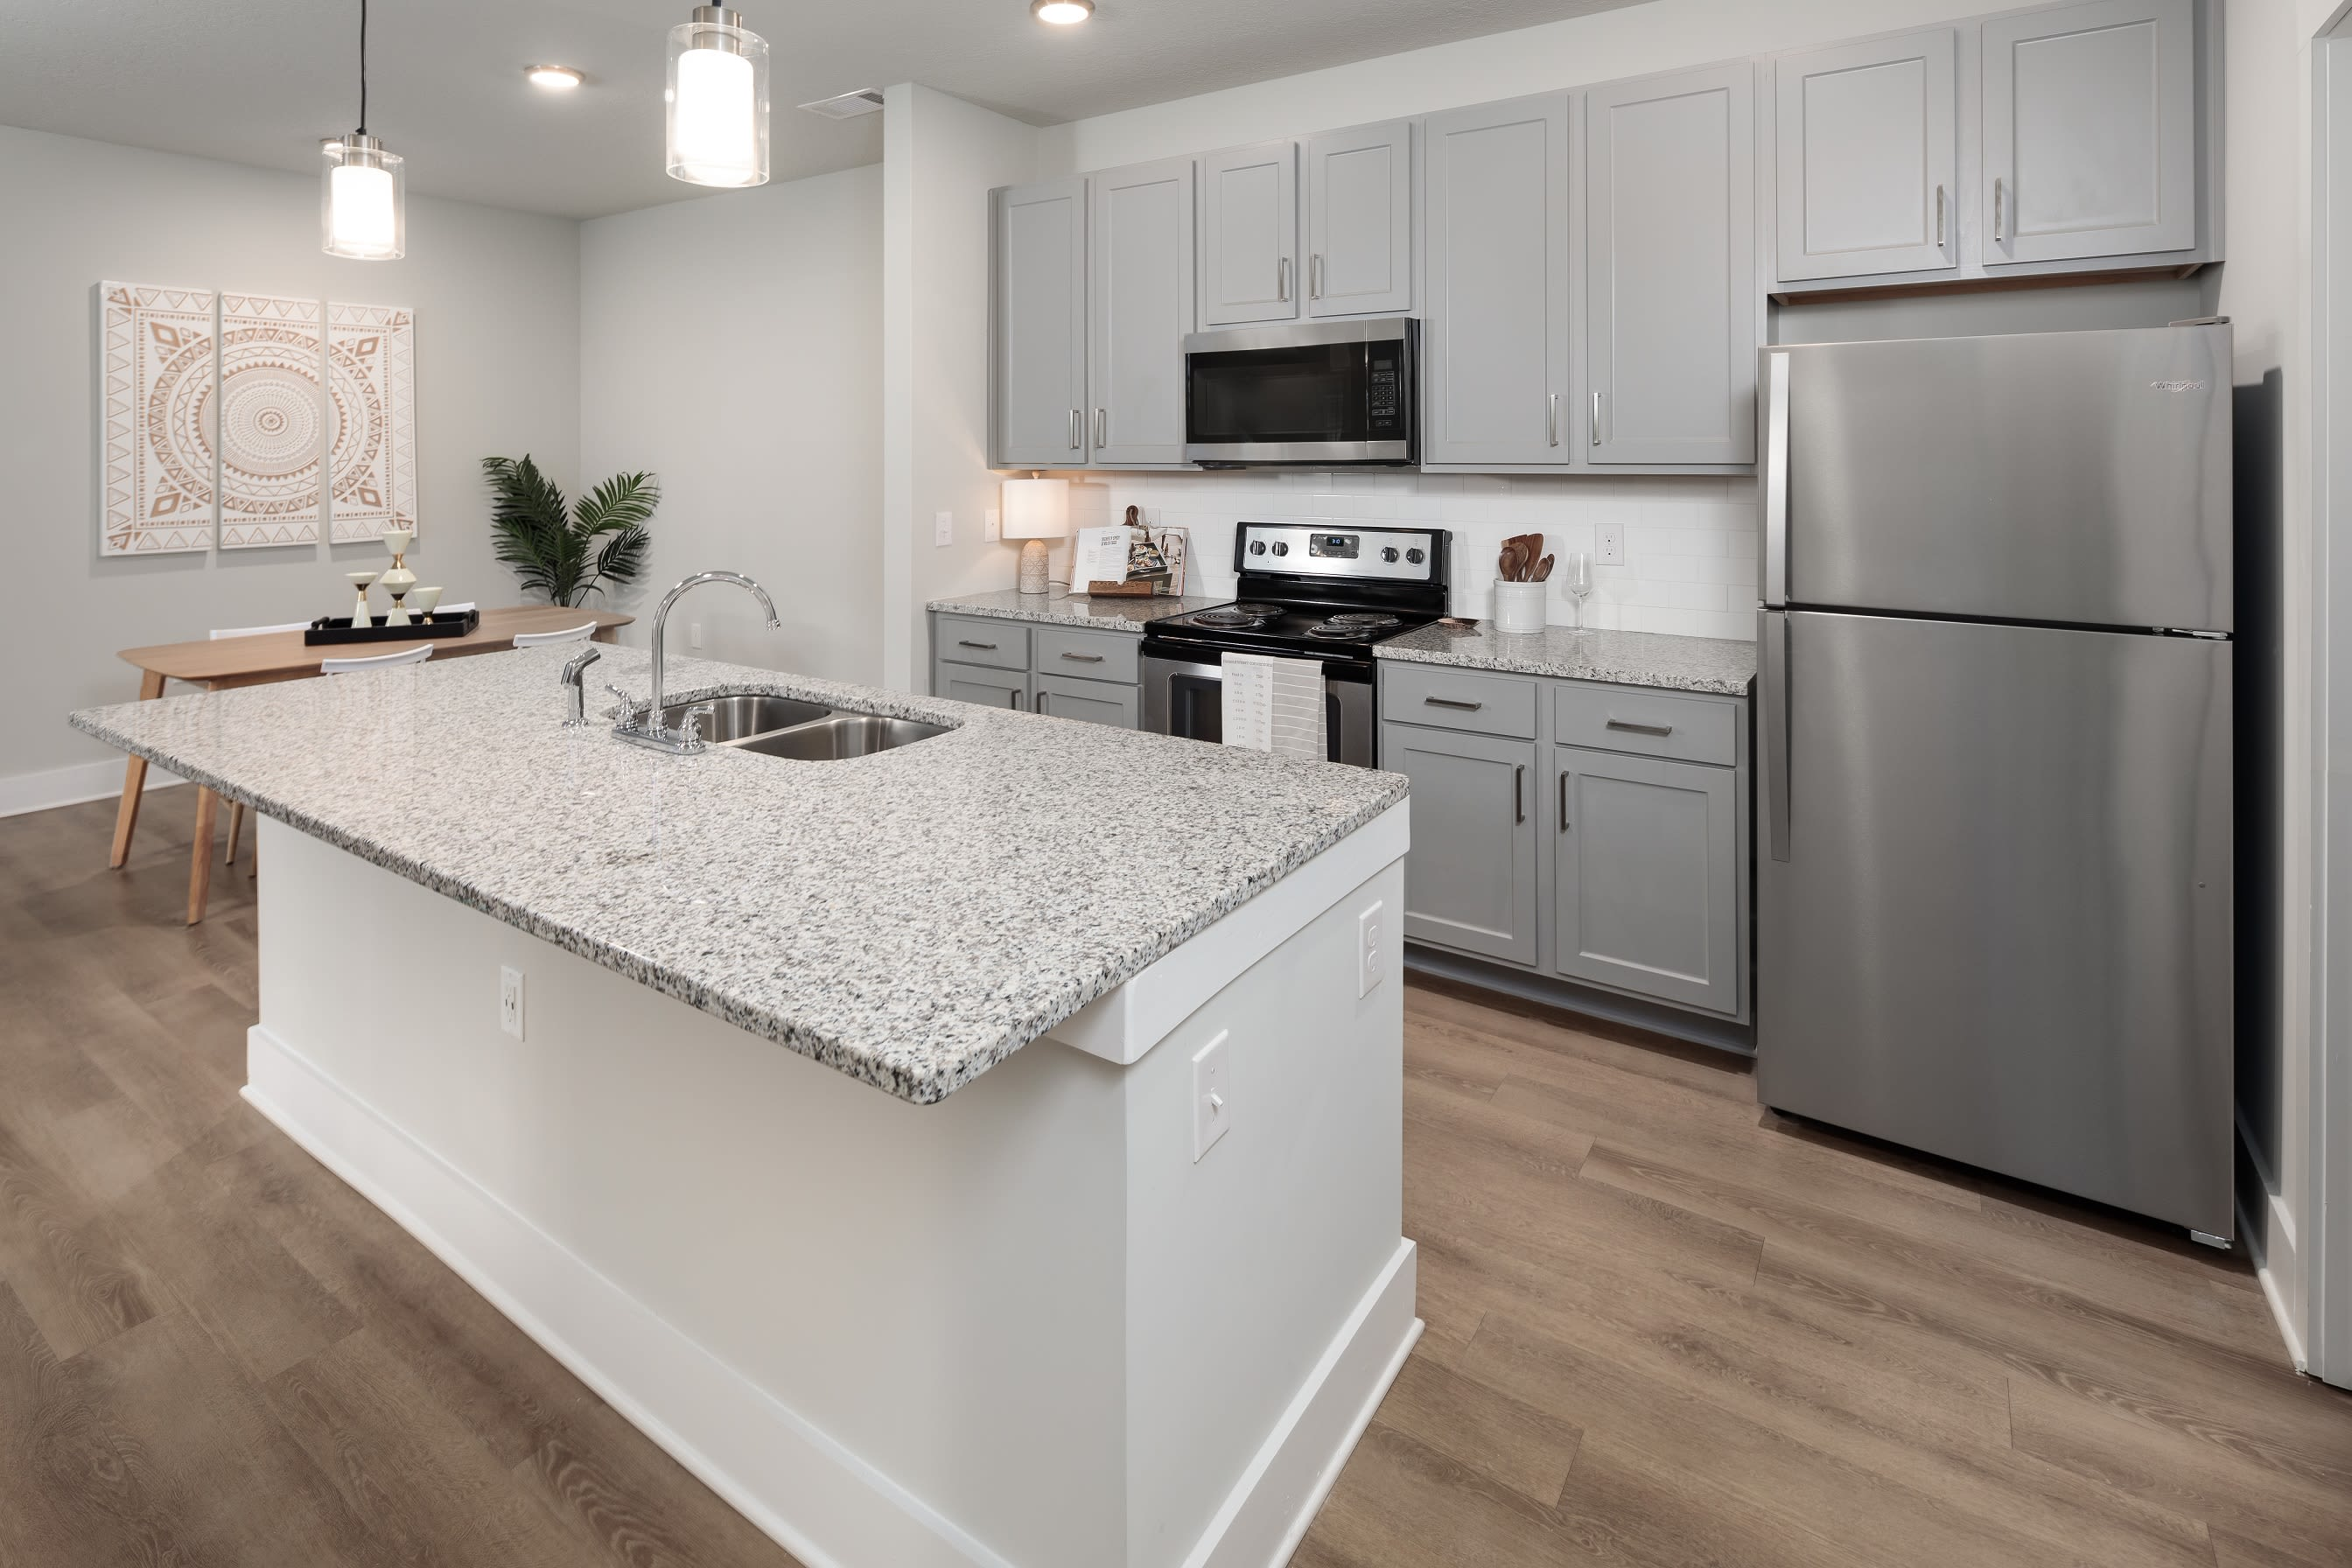 Large kitchen with white cabinets appliances and washer dryer at The Mason in Ladson, South Carolina